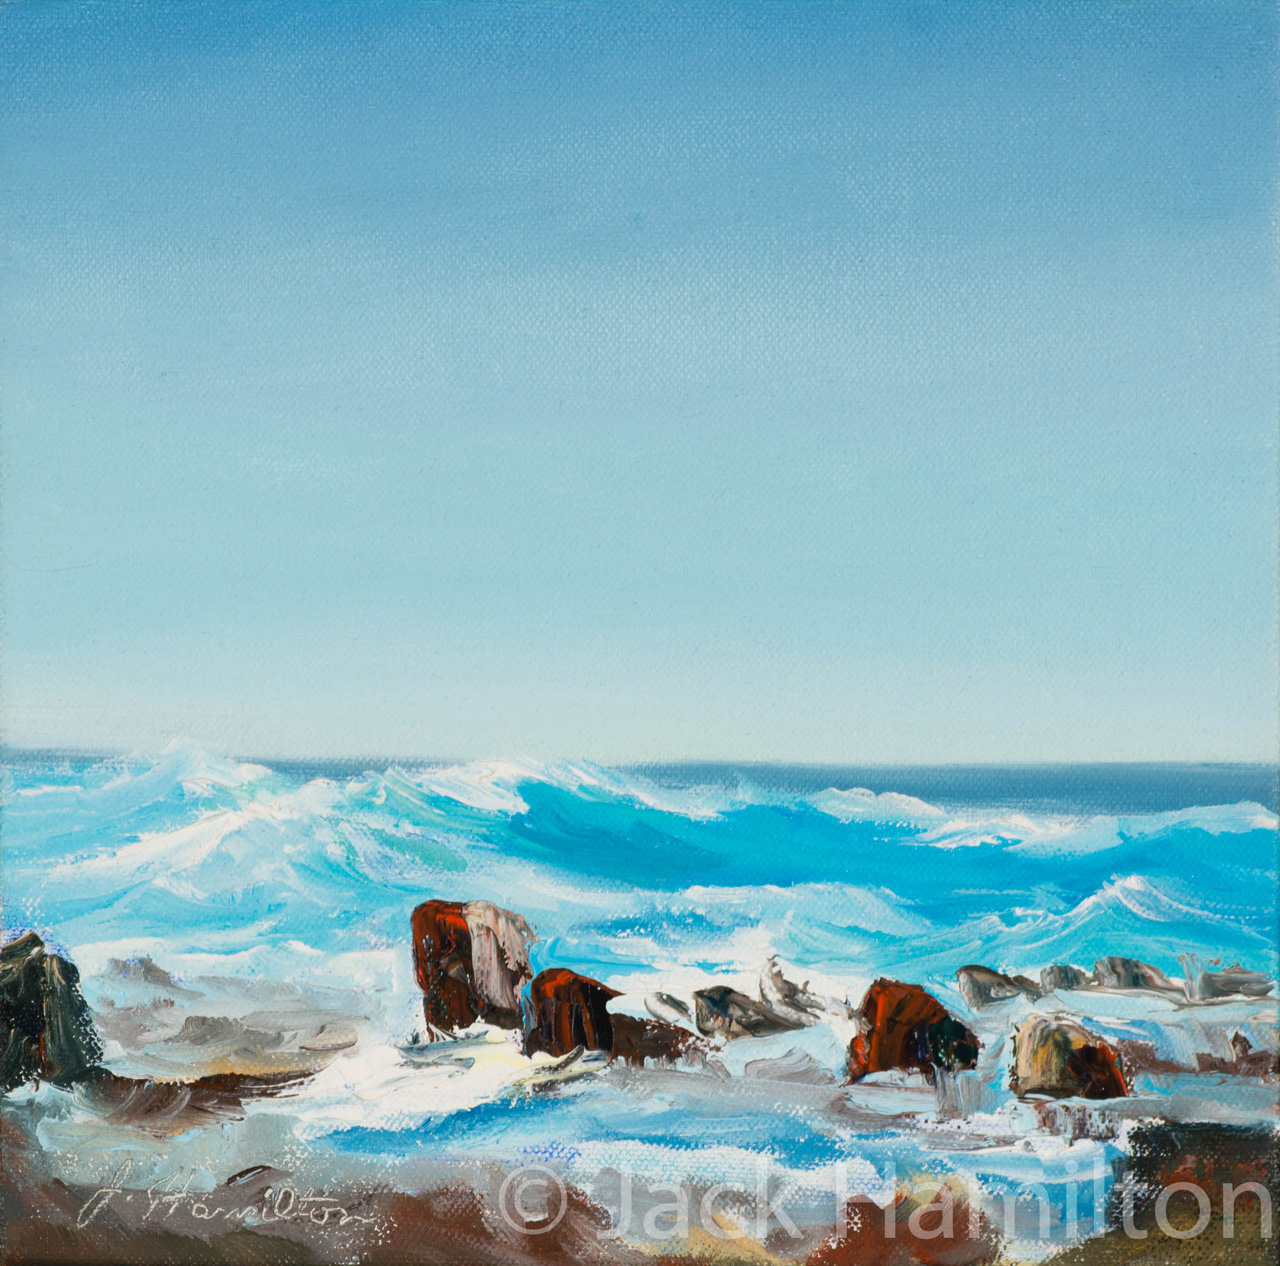 Turquoise Waves by Jack Hamilton oil on canvas